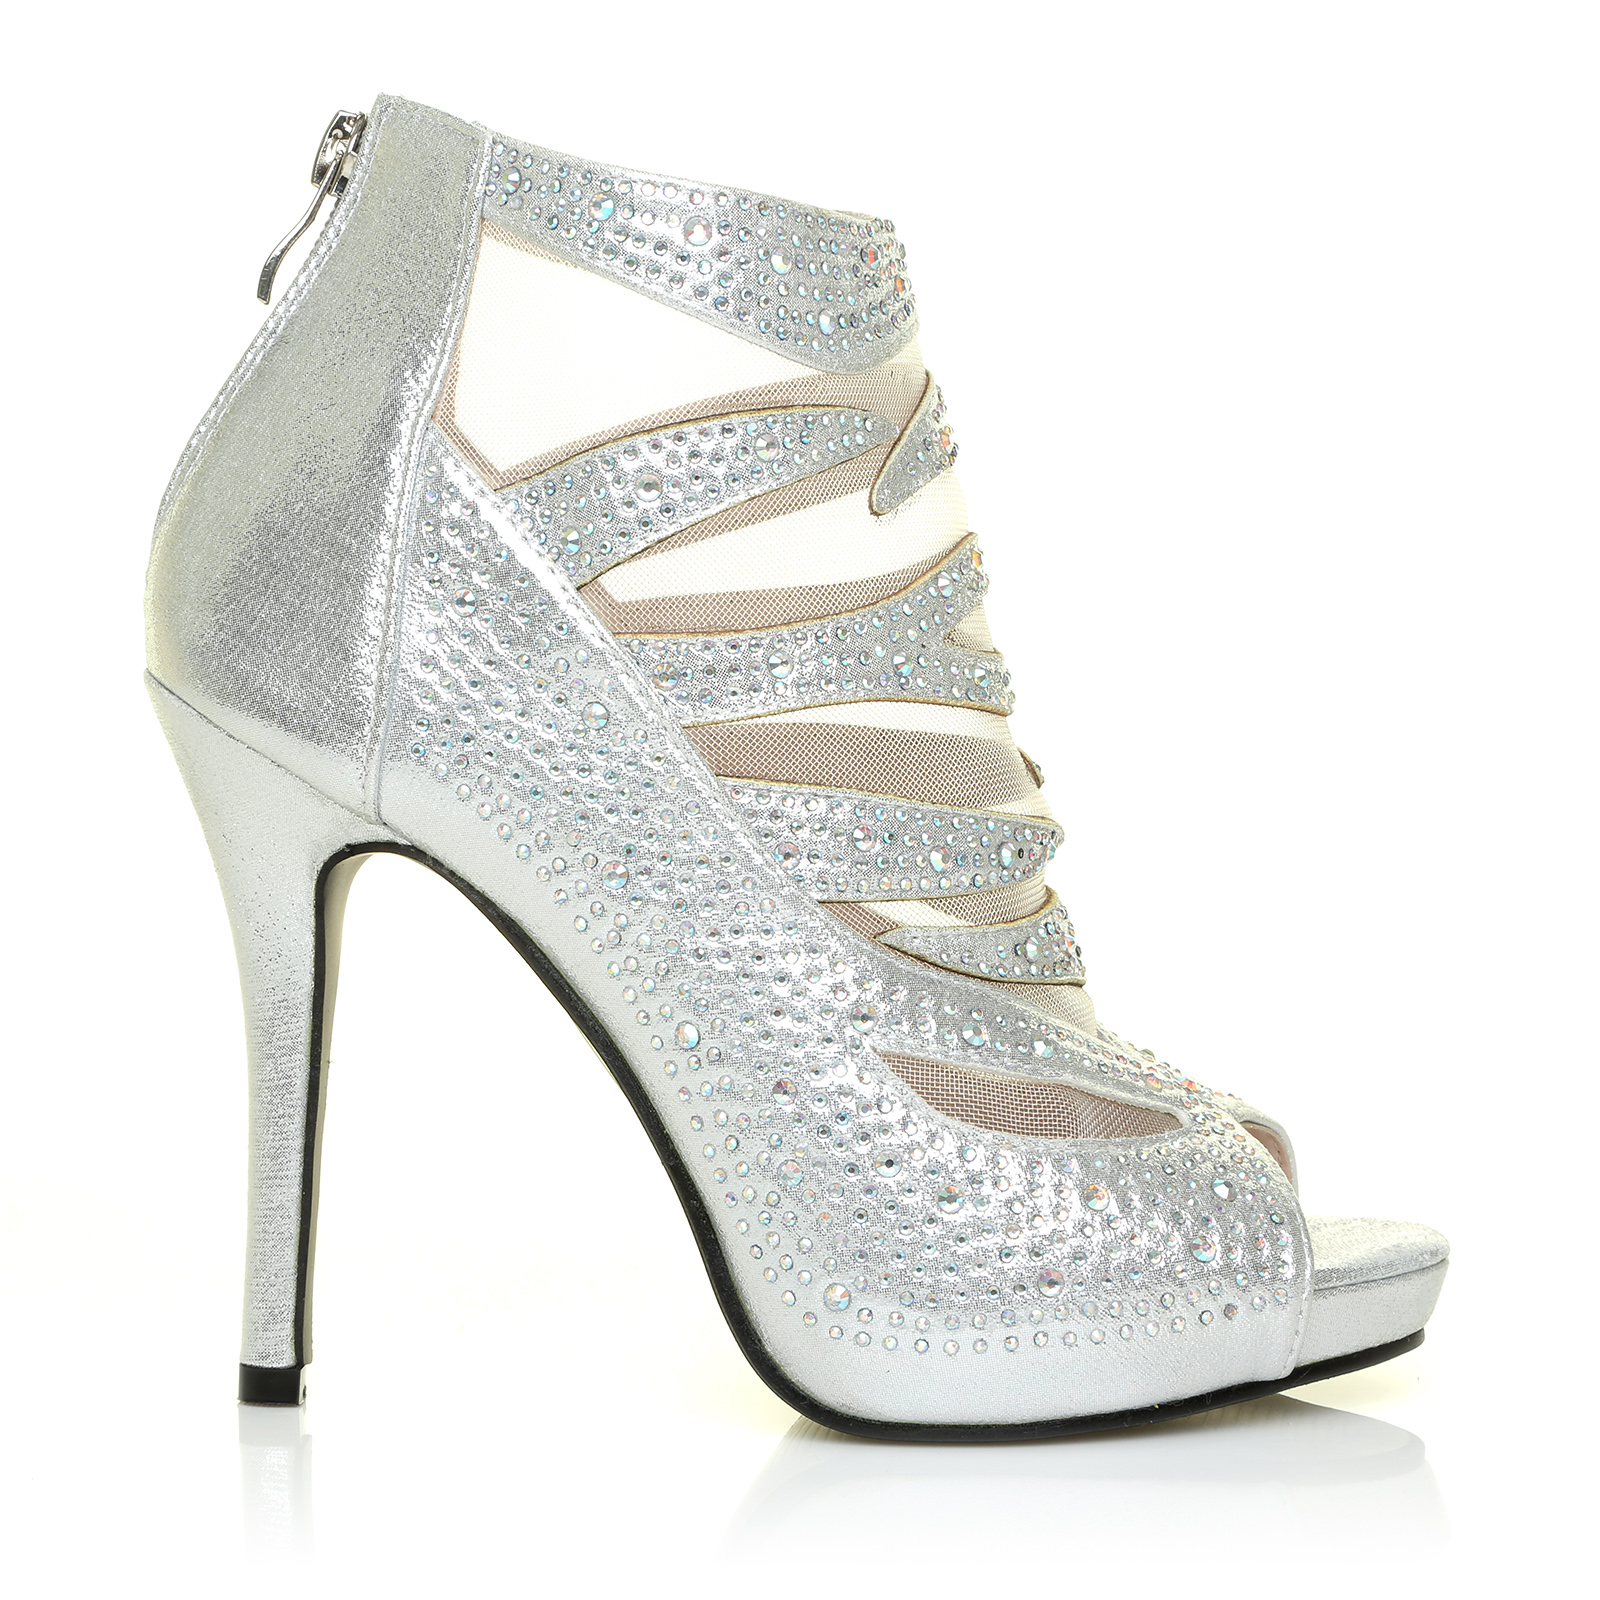 Silver shimmer diamante ankle strap sandals